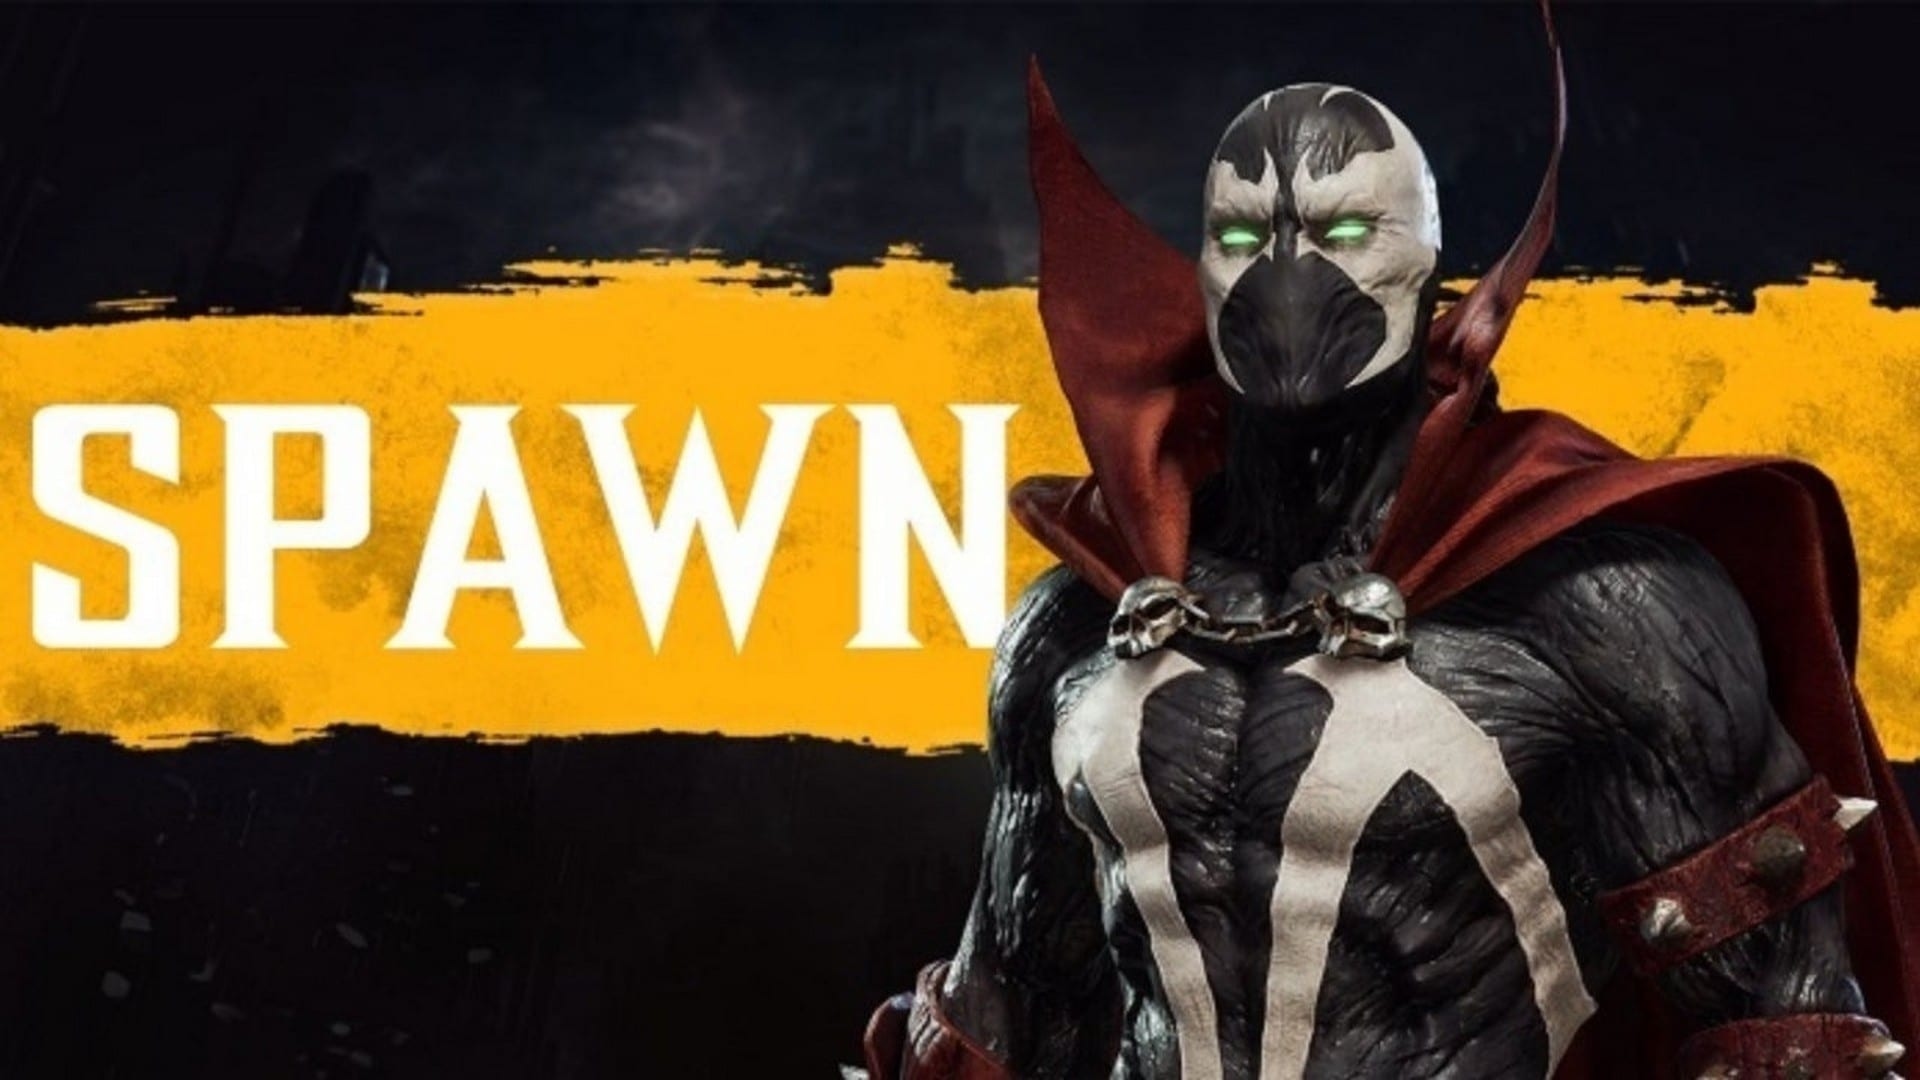 New Mortal Kombat 11 Trailer Debuts First Gameplay For Fan-Favourite Comic Book Character – Spawn